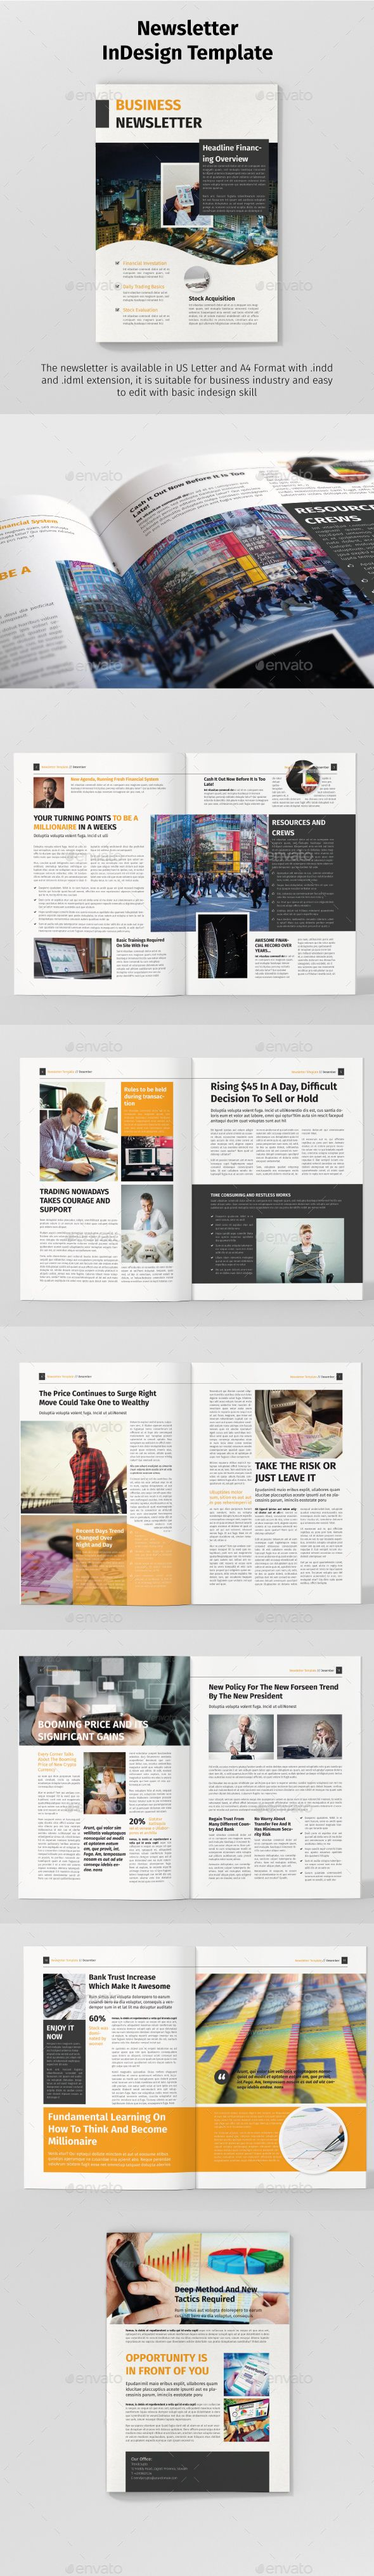 Newsletter Template 12 pages hi quality design professional